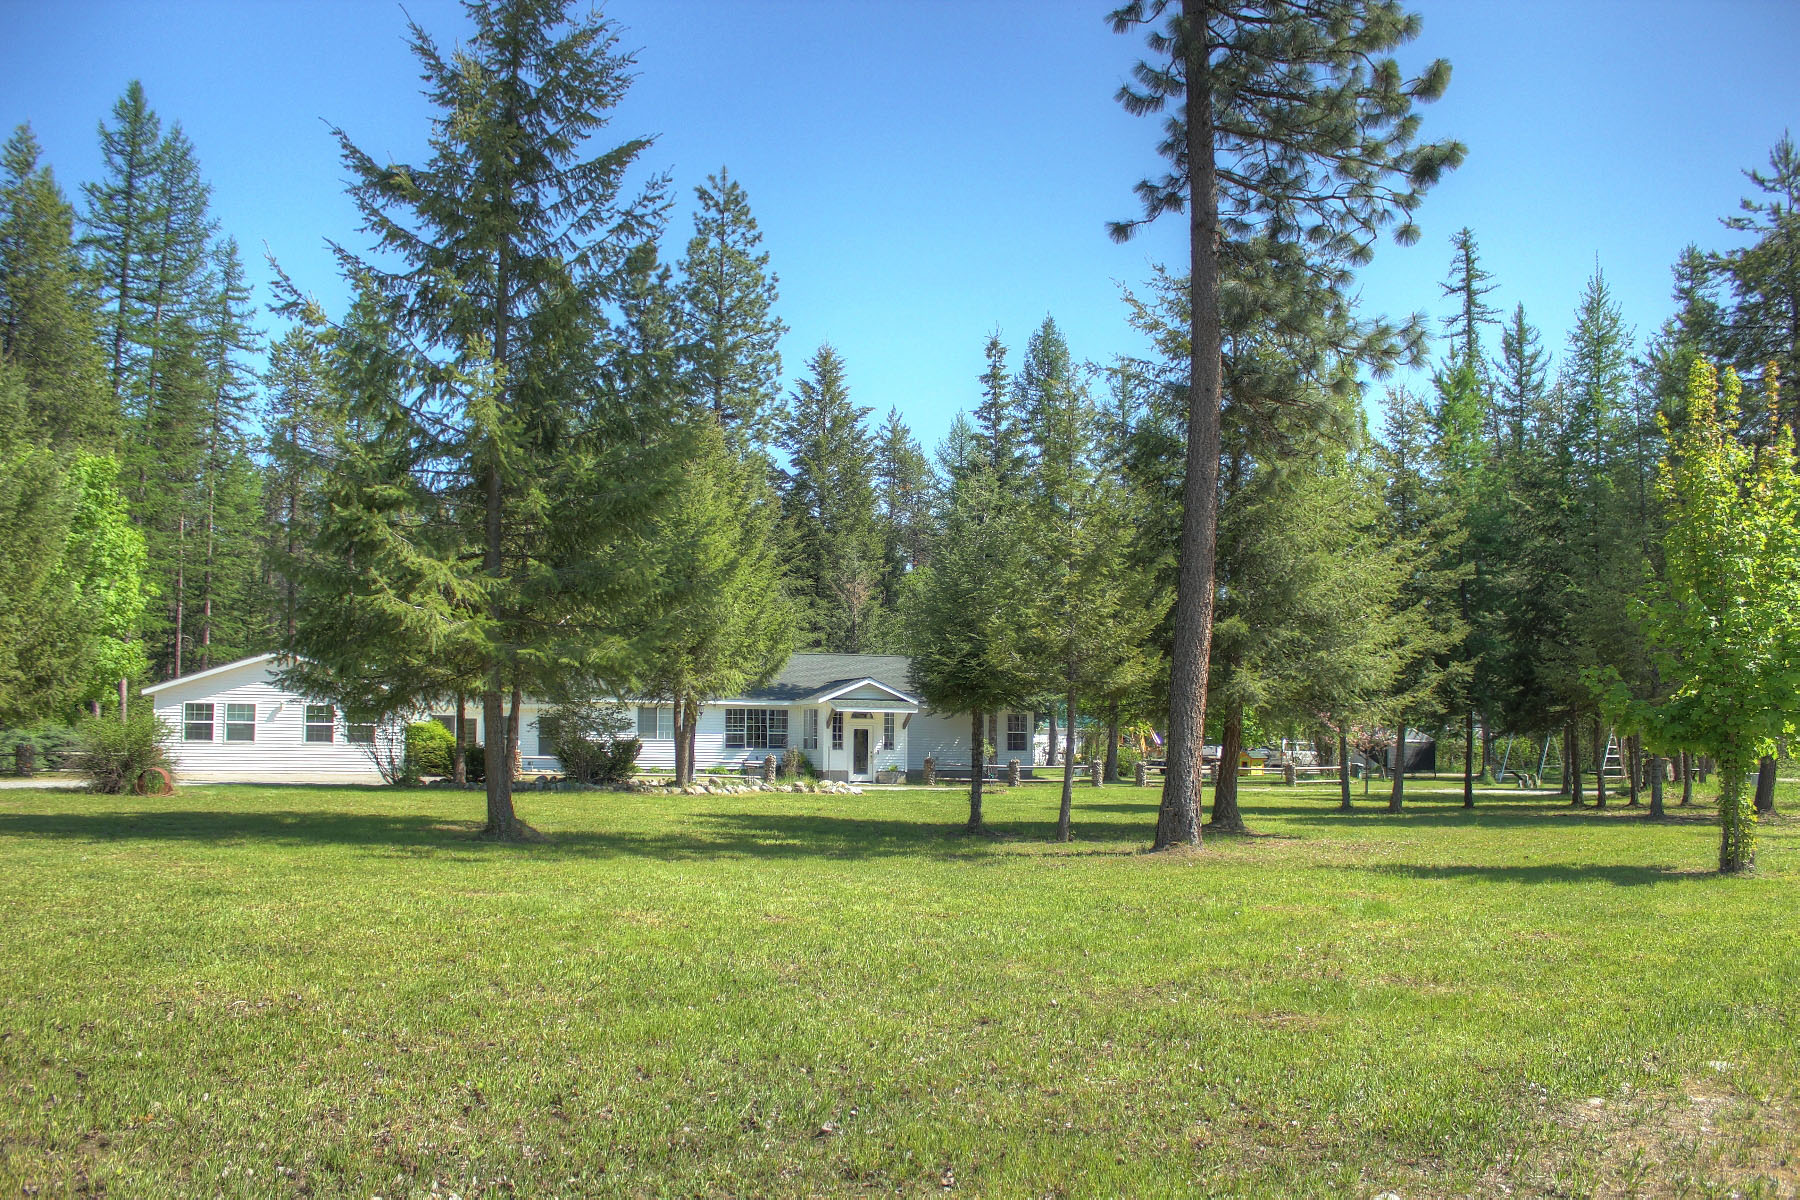 Single Family Home for Sale at Pristine ranch style home located on 4.95 acres 147 Shepard Rd Oldtown, Idaho, 83822 United States